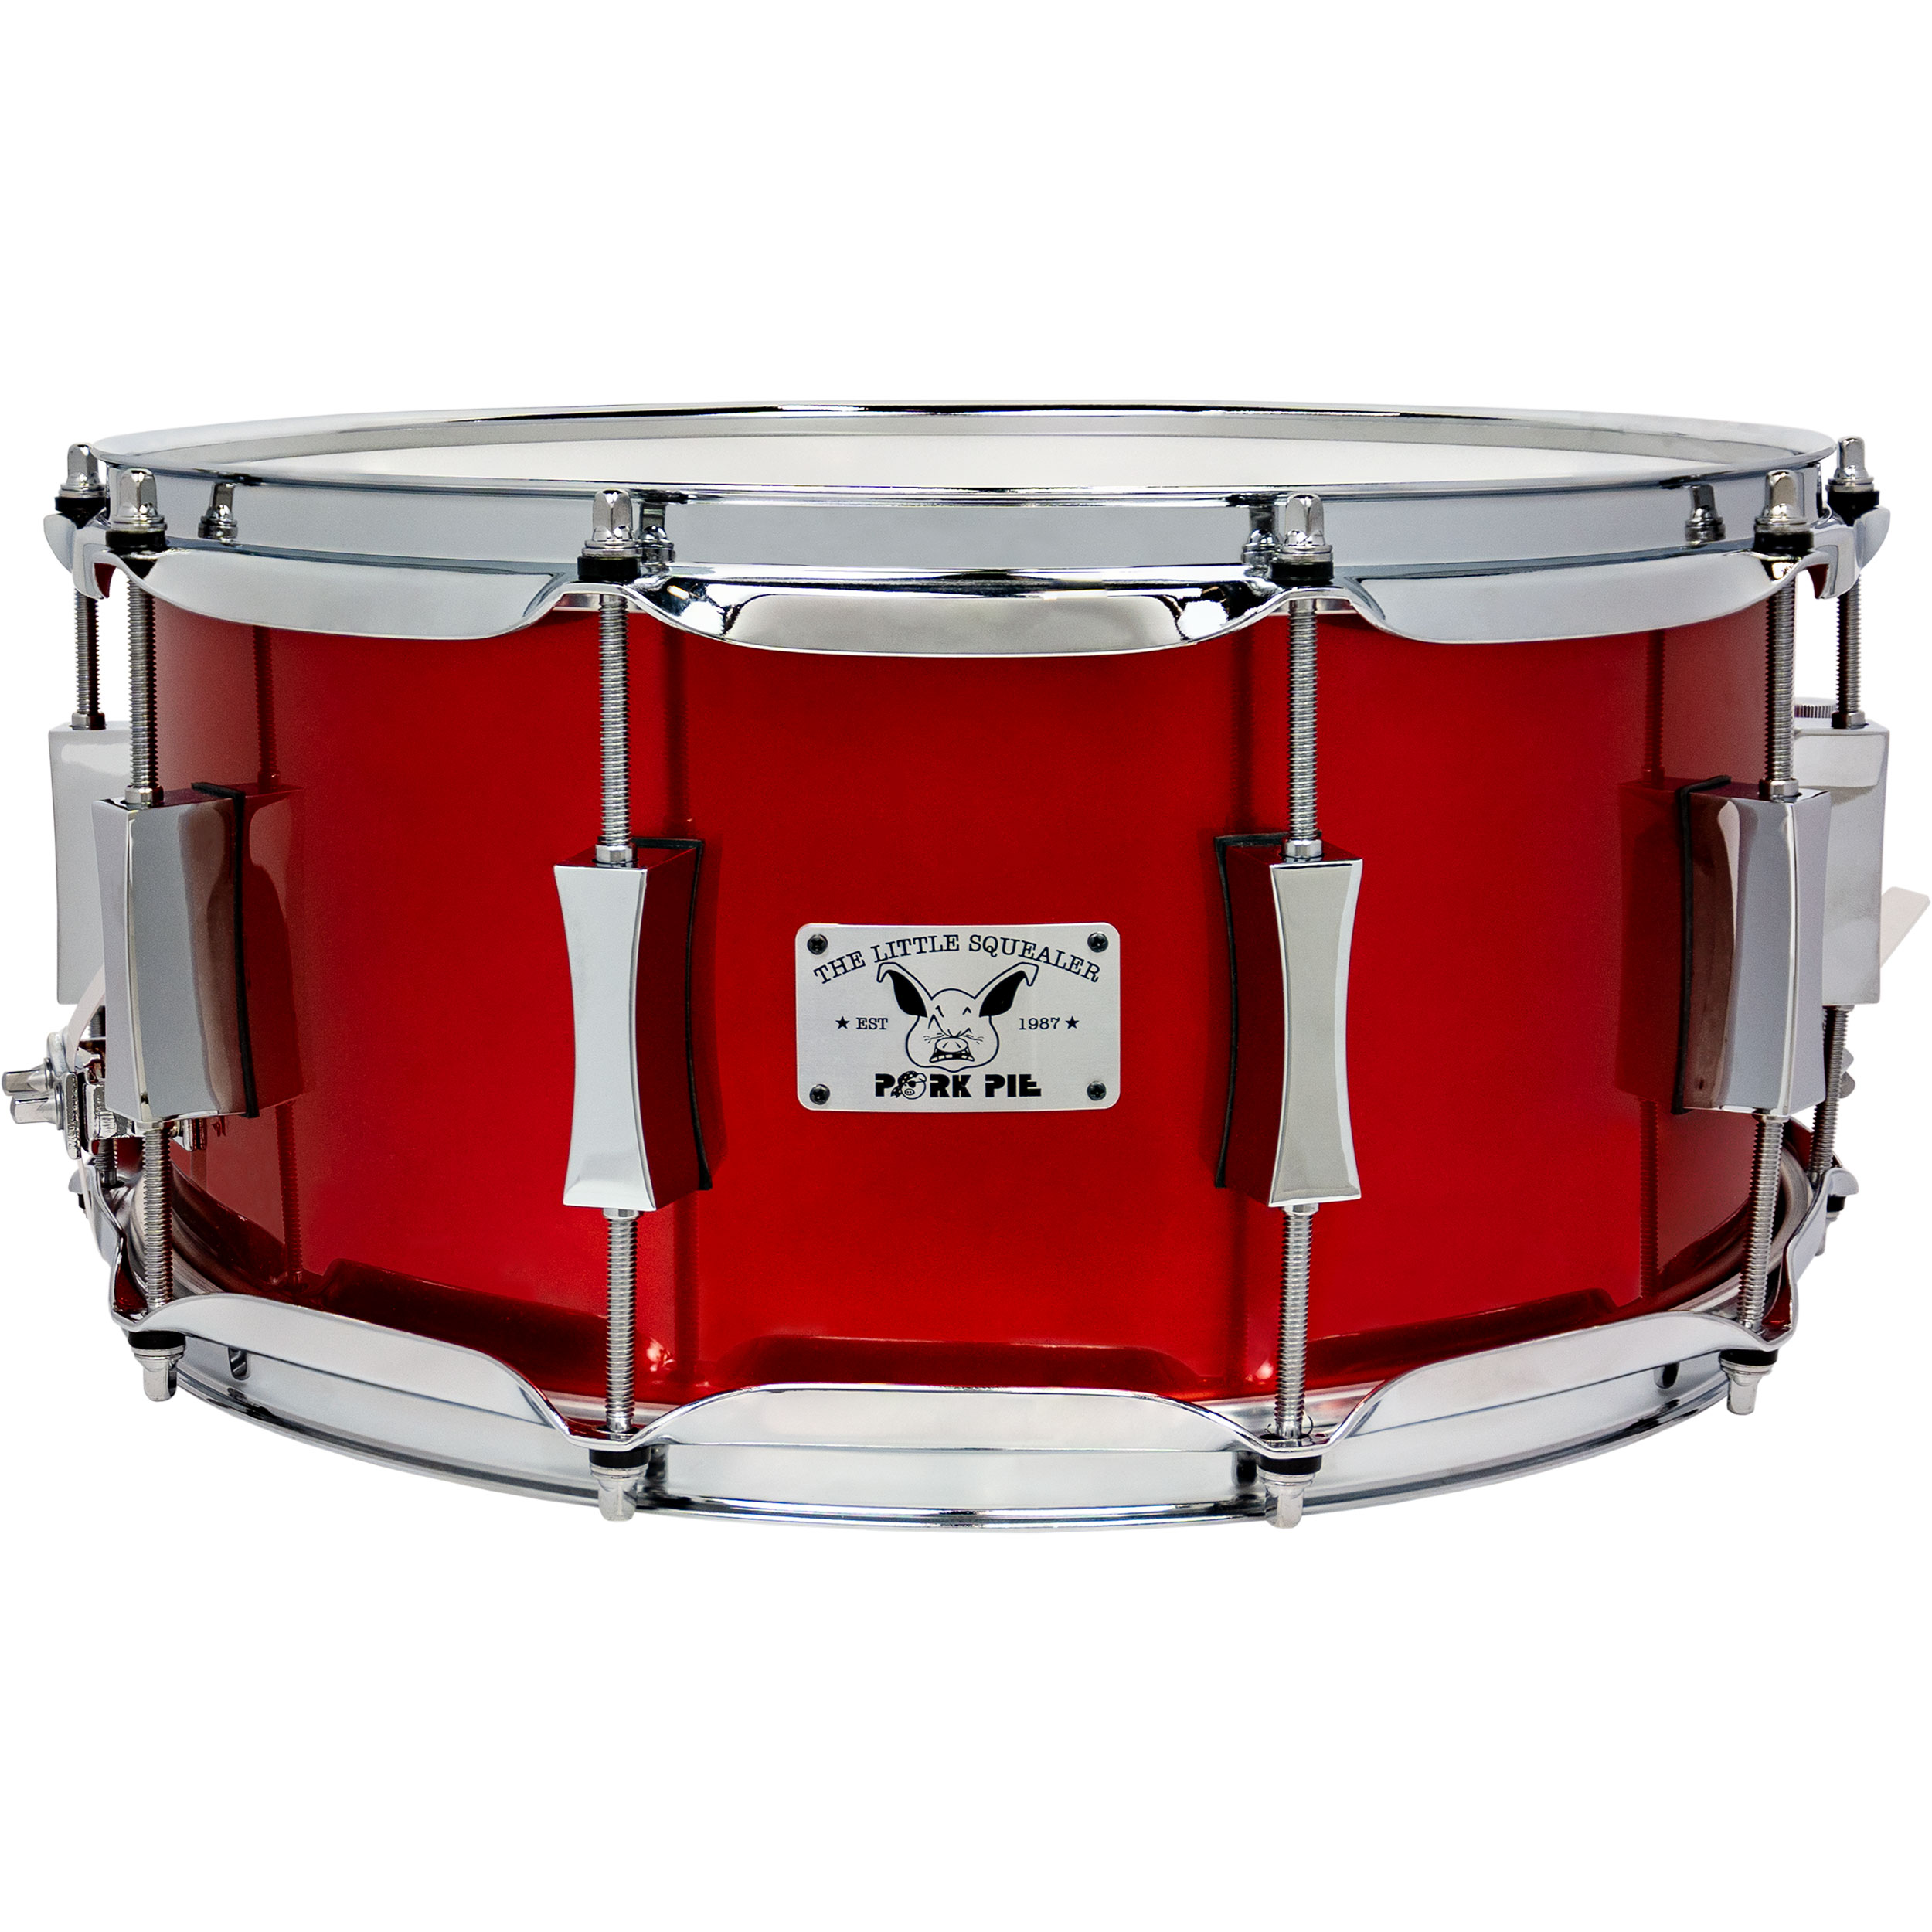 """Pork Pie Percussion 6.5"""" x 14"""" Little Squealer Snare Drum in Firethorn Red"""